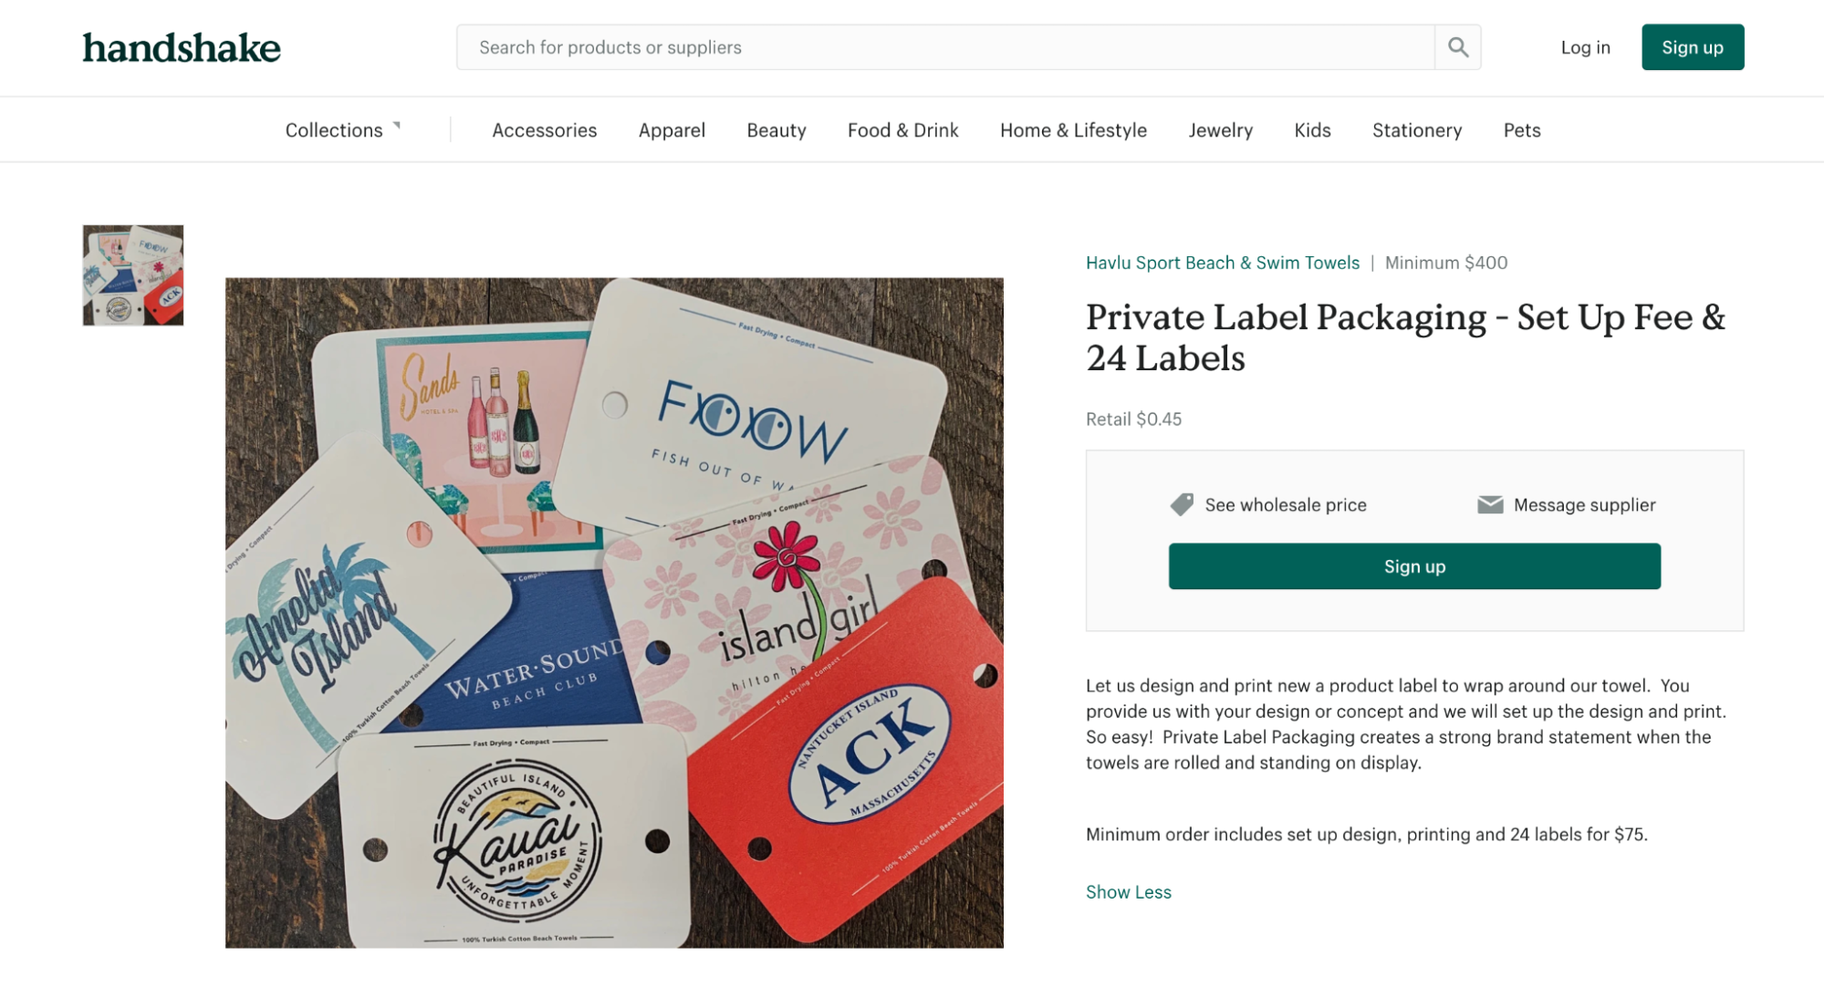 Sourcing Products From Wholesalers: Private Labeling